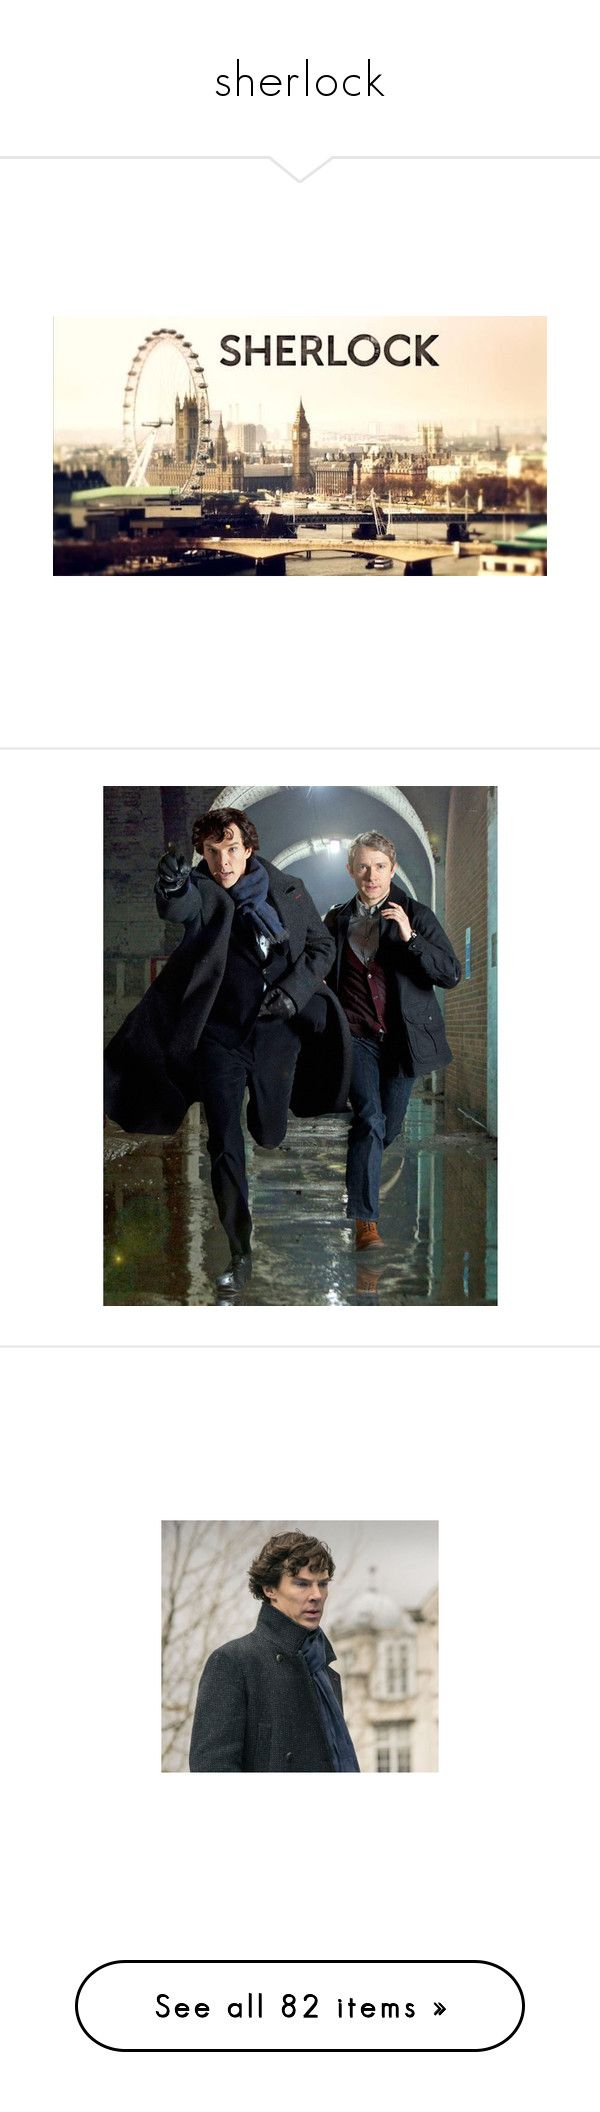 """""""sherlock"""" by zoe-sears on Polyvore featuring sherlock, backgrounds, fillers, art, other, sherlock holmes, pictures, people, images and filler"""